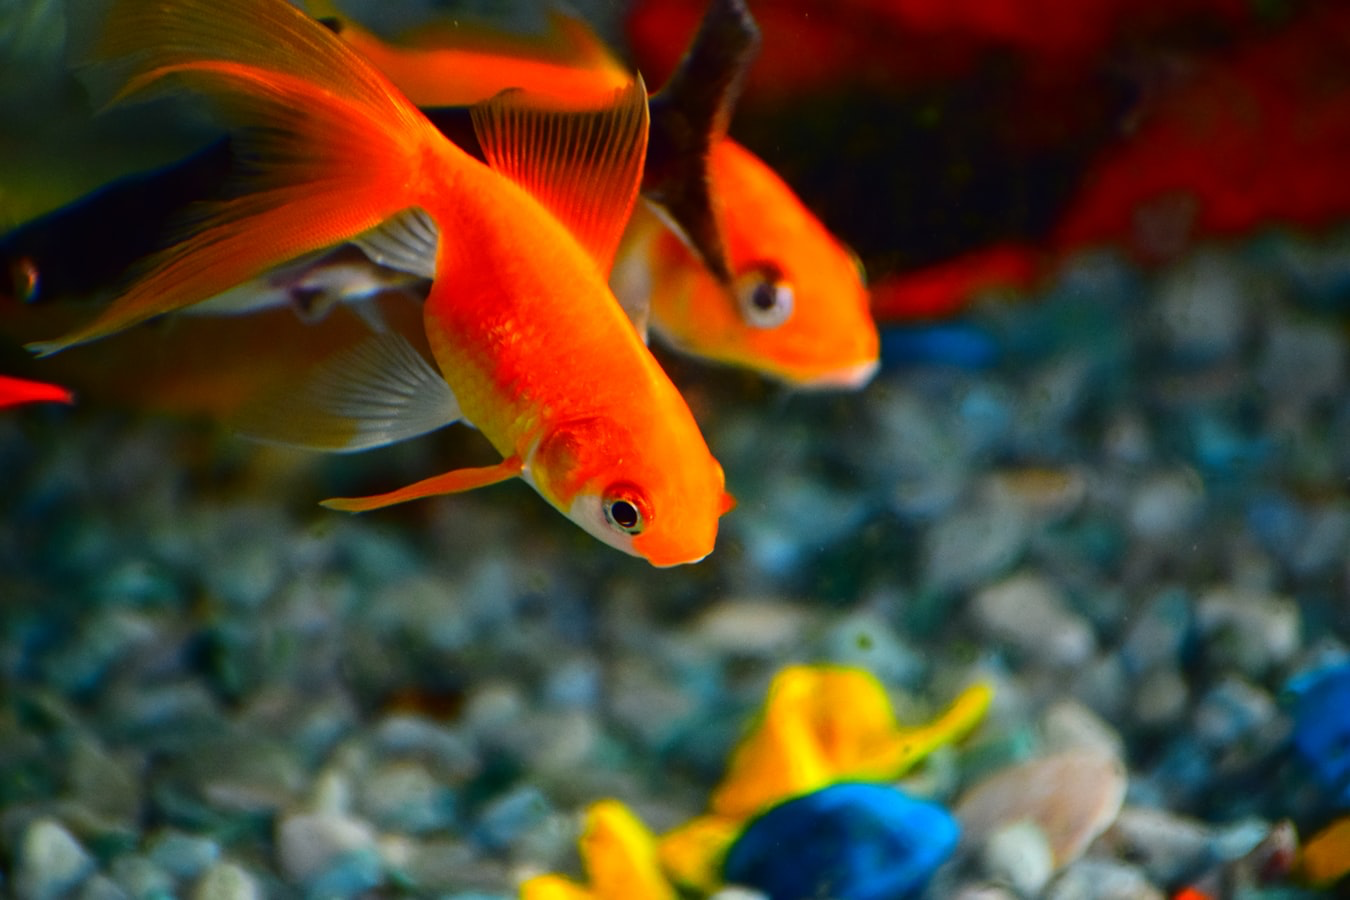 Two fish in an aquarium